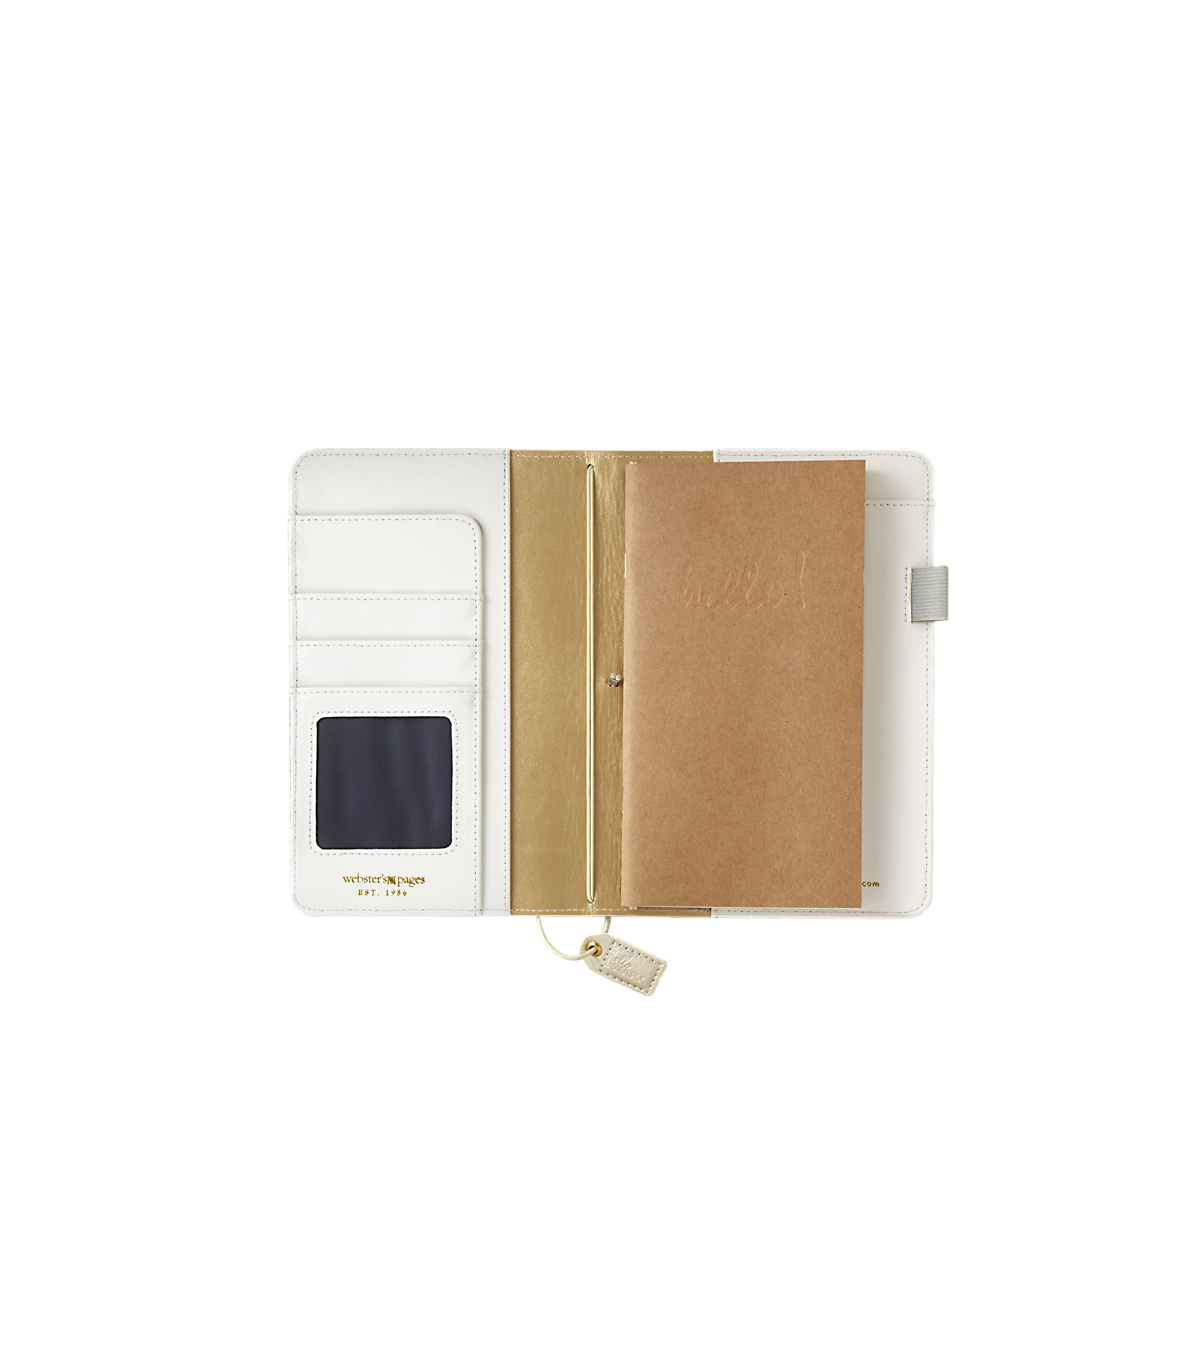 Webster\u0027s Pages Color Crush Travelers Notebook Planner-Champagne